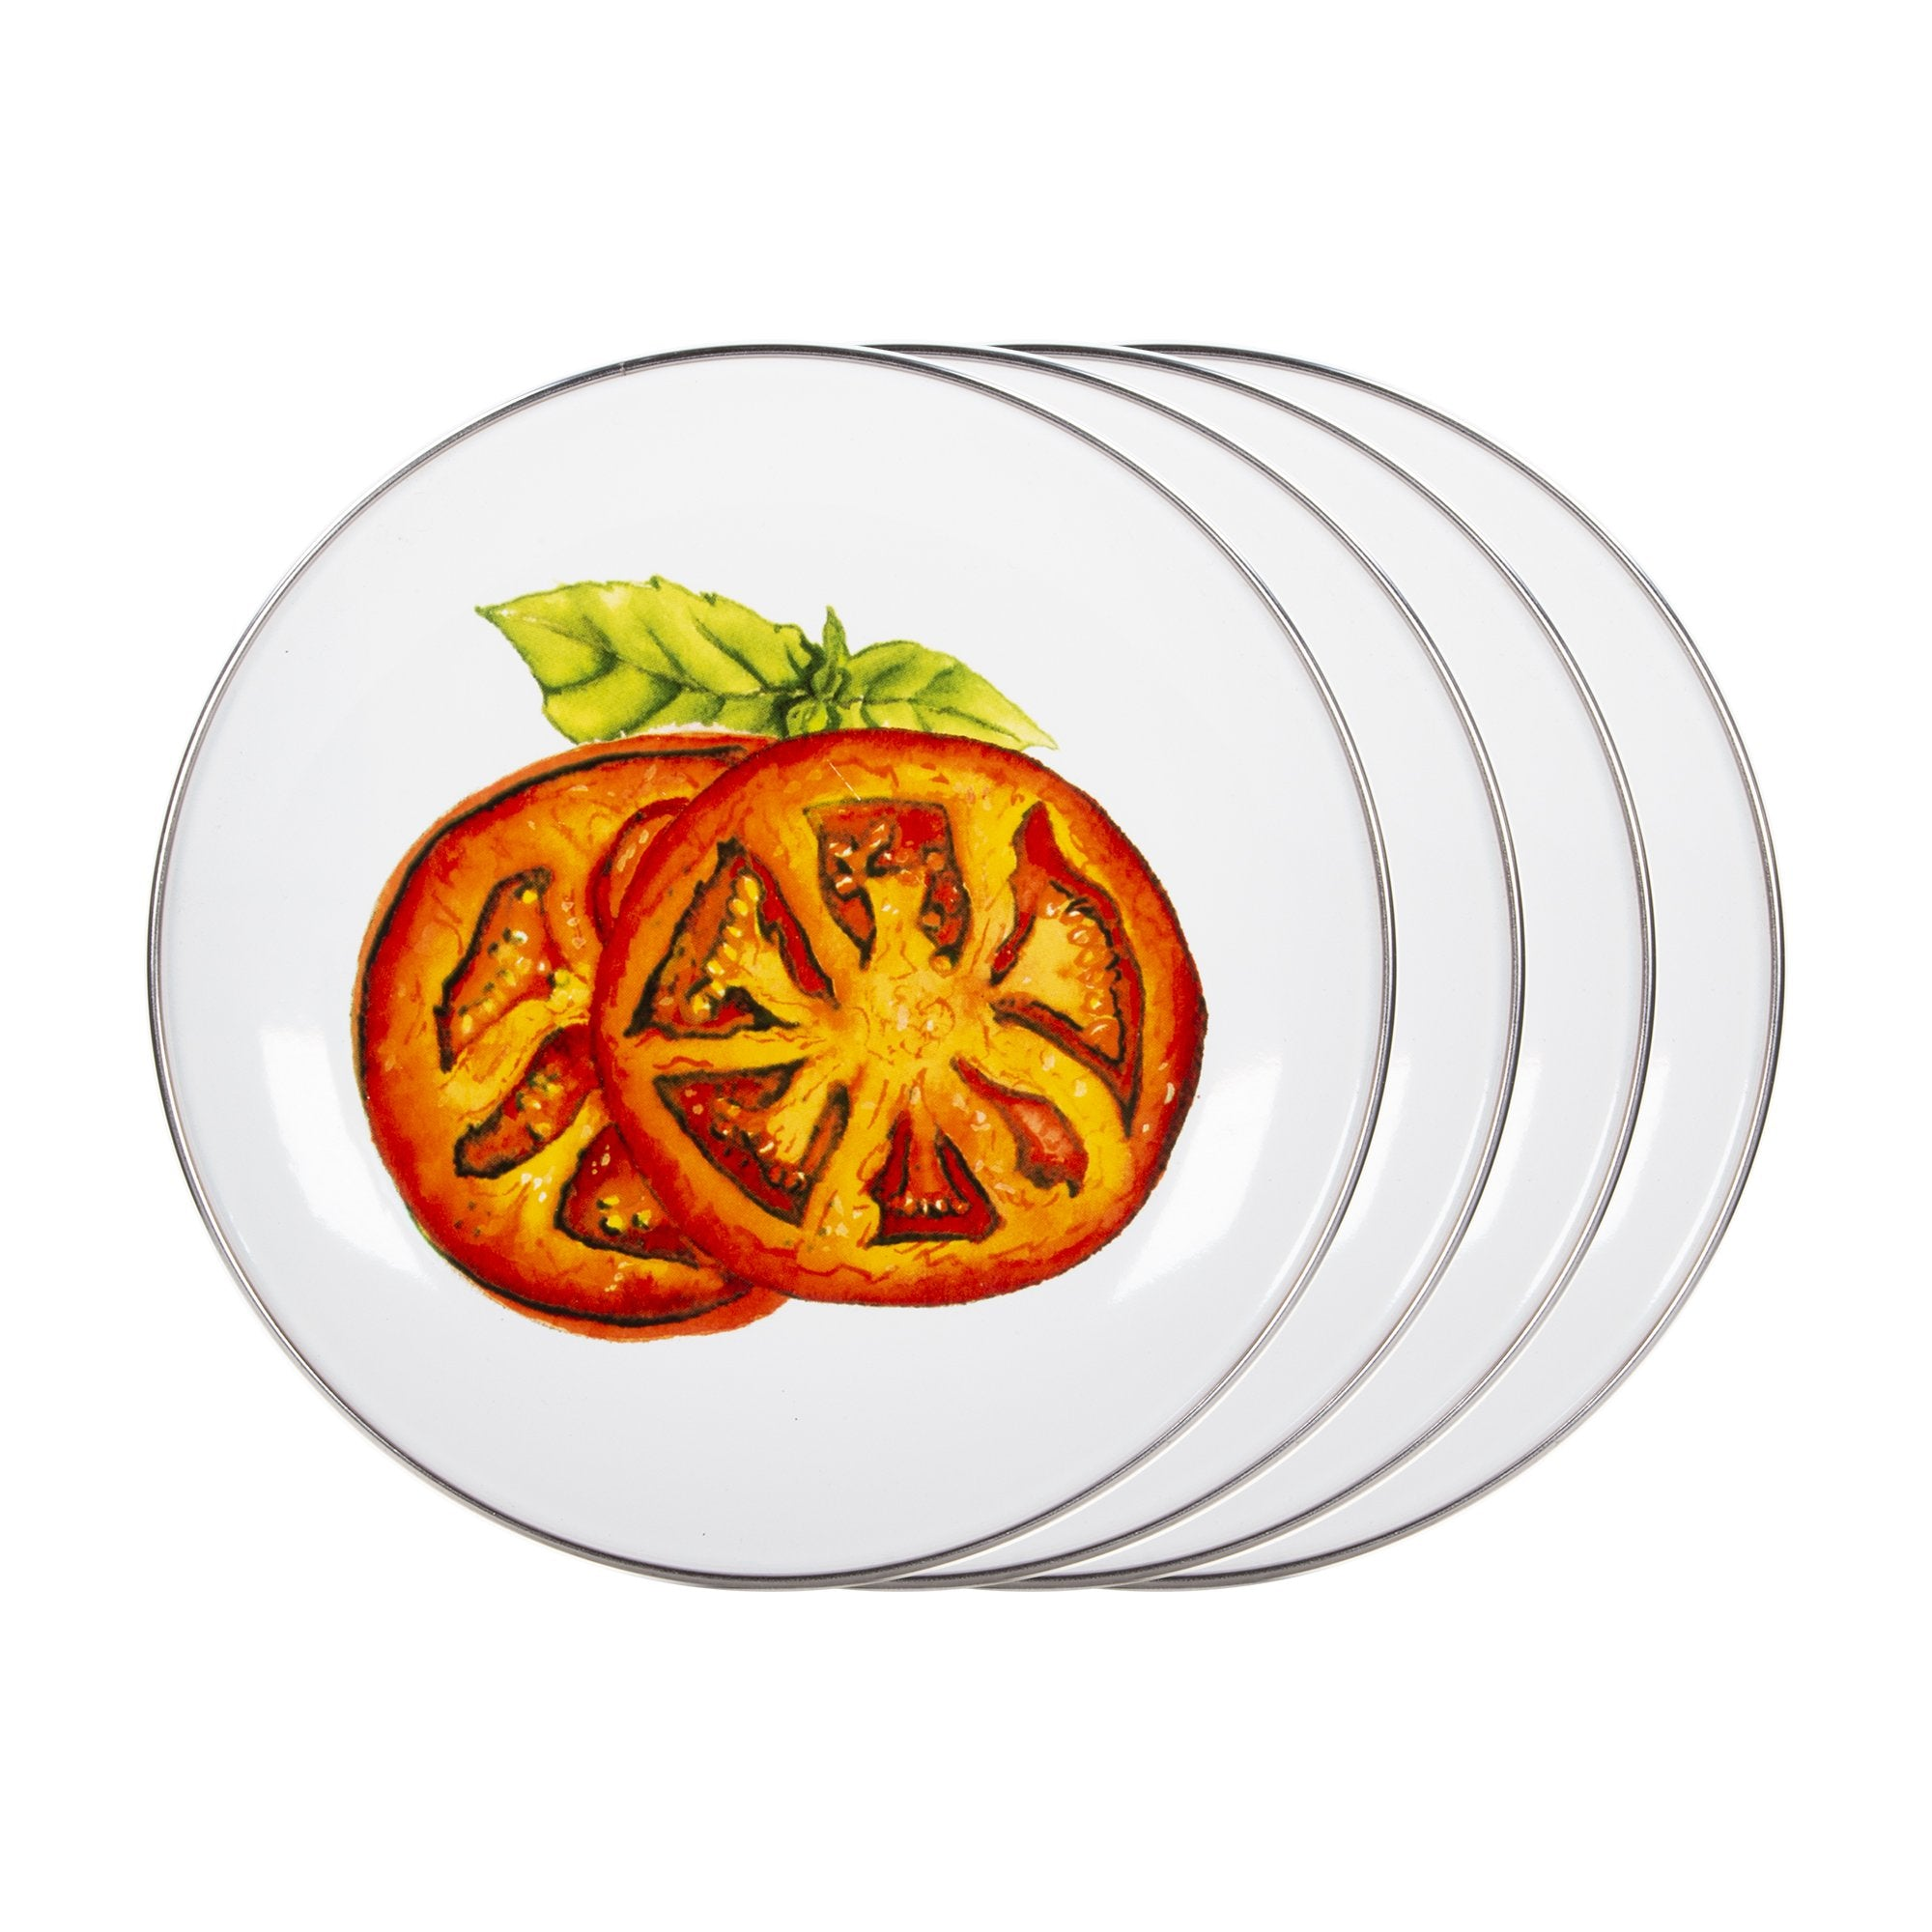 TM69 - Tomatoes Pattern - Enamelware Sandwich Plate - by Golden Rabbit